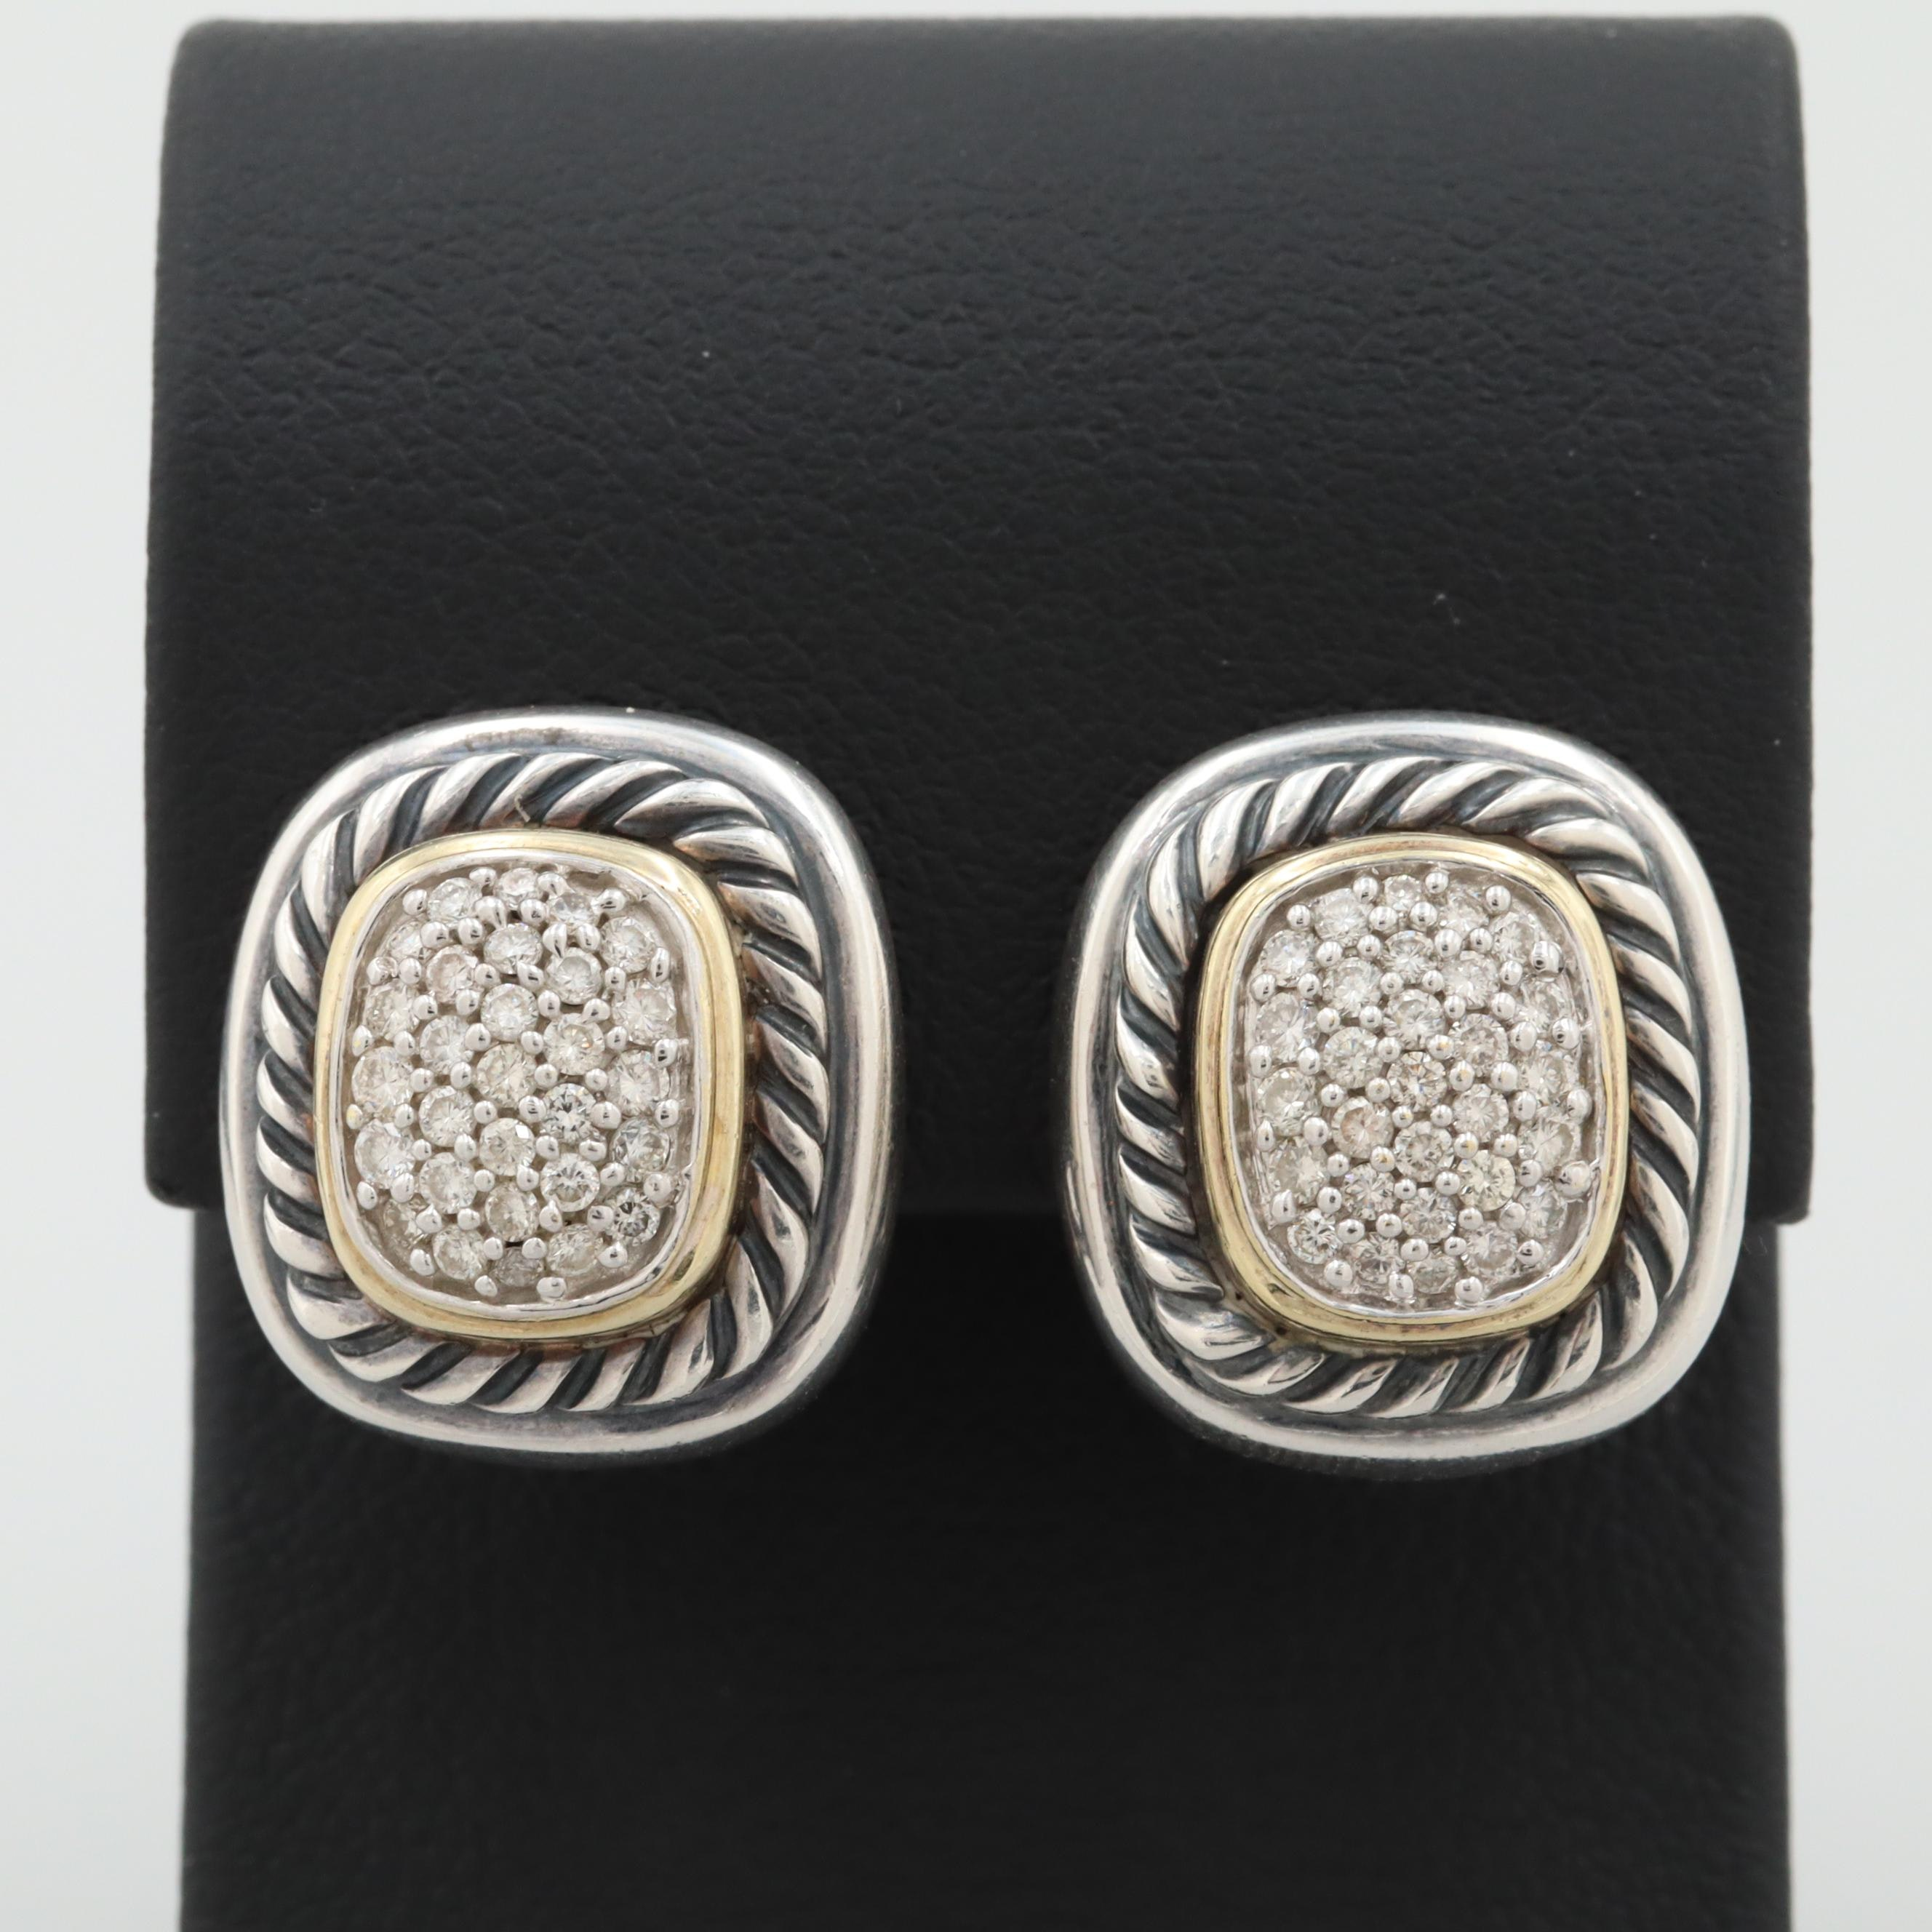 David Yurman Albion Sterling Silver and 18K Yellow Gold Diamond Earrings